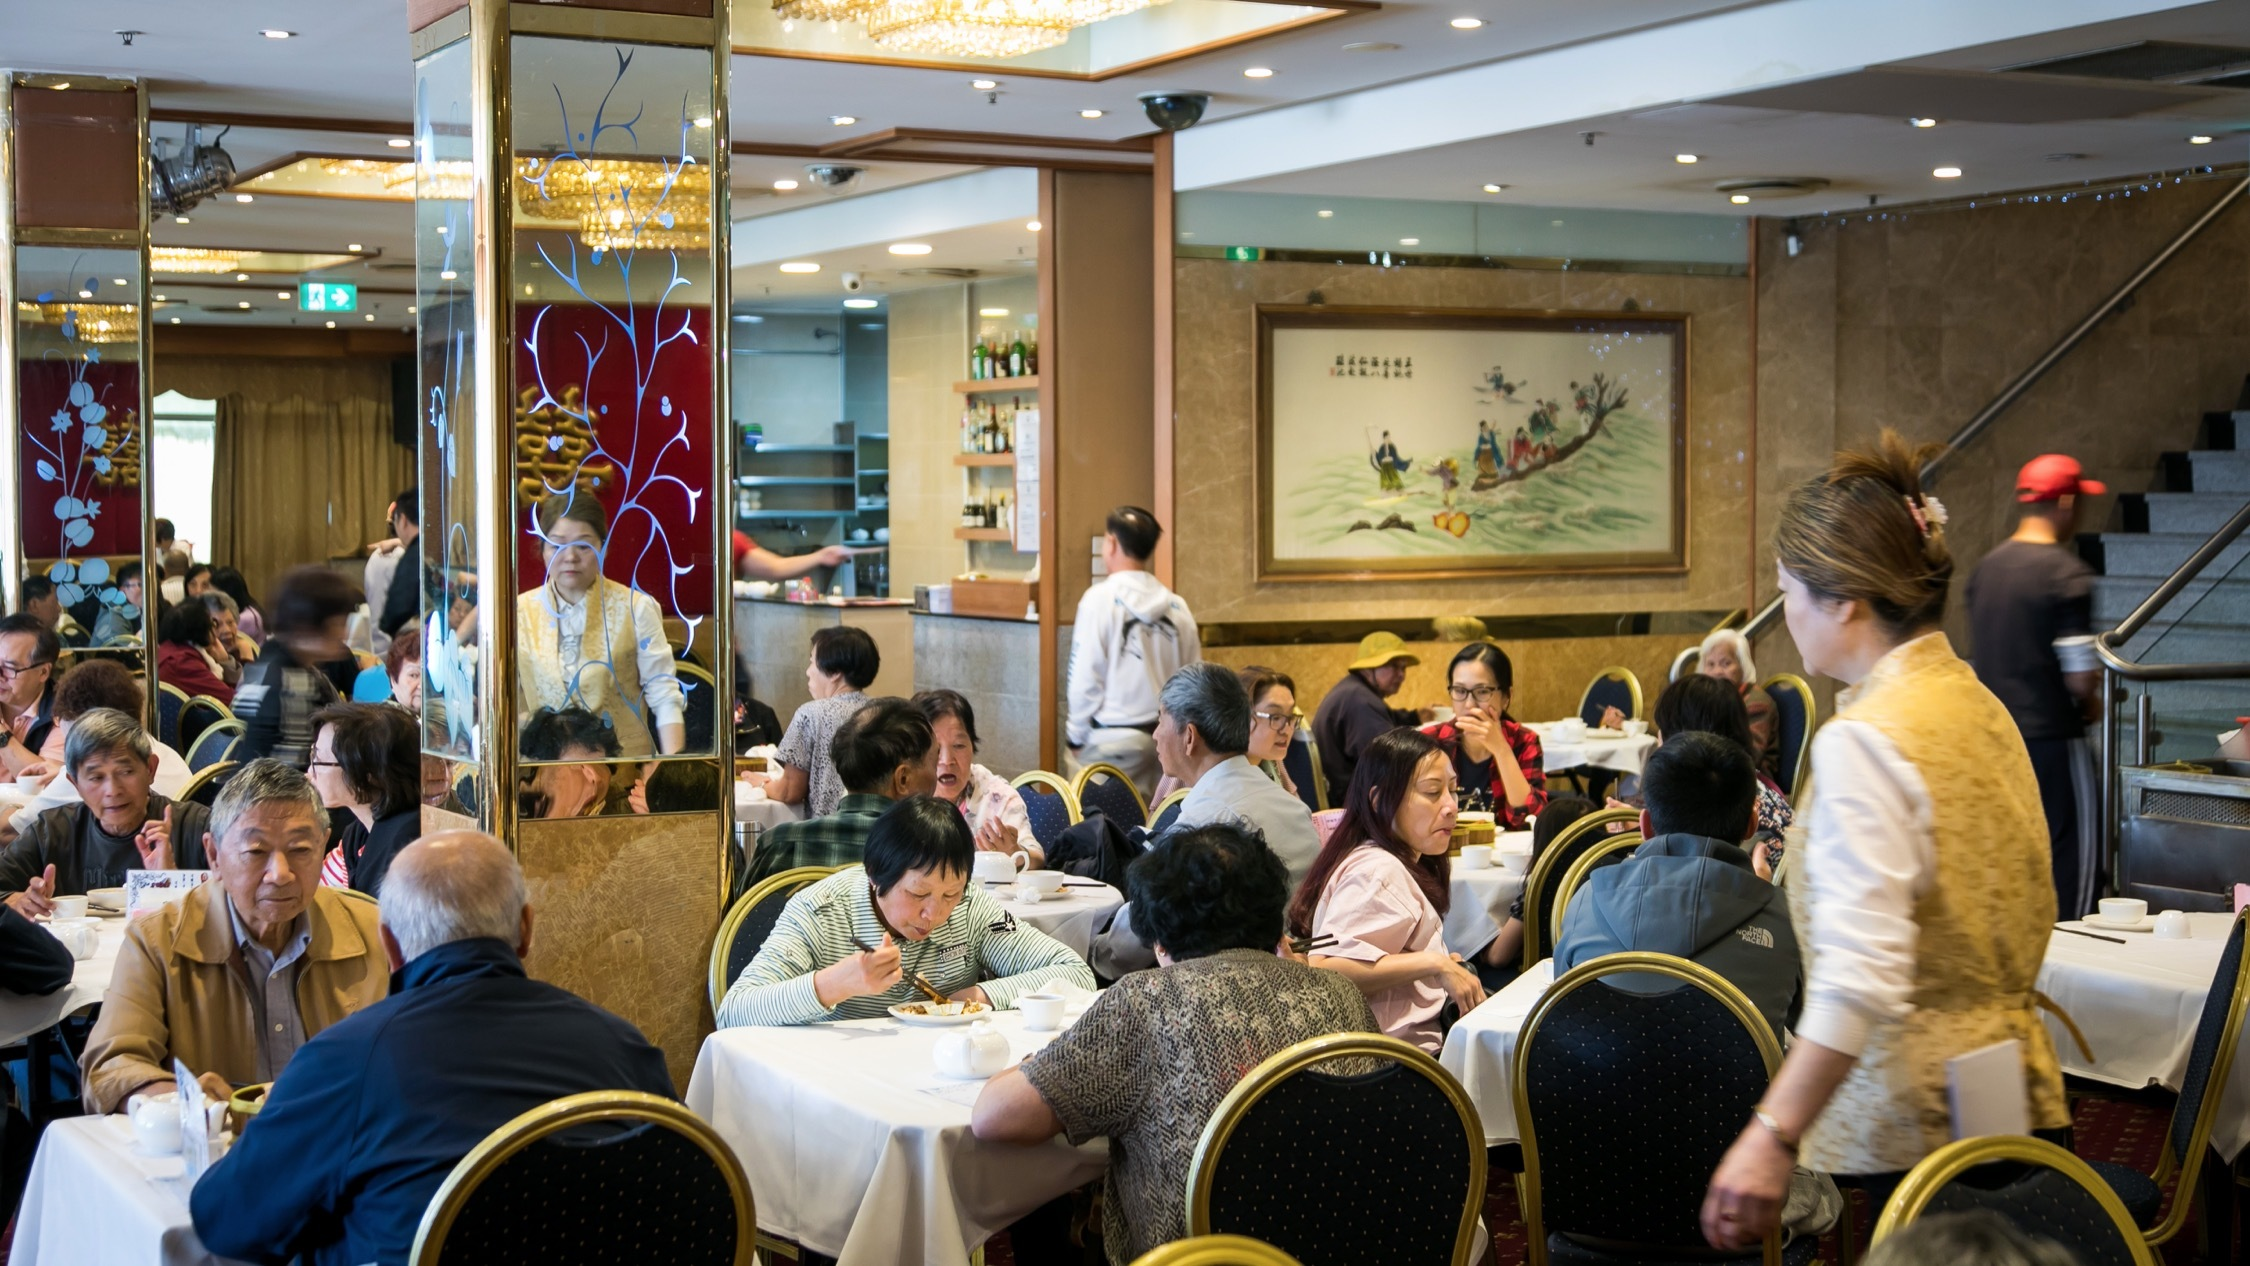 Sunny Harbour Seafood Restaurant